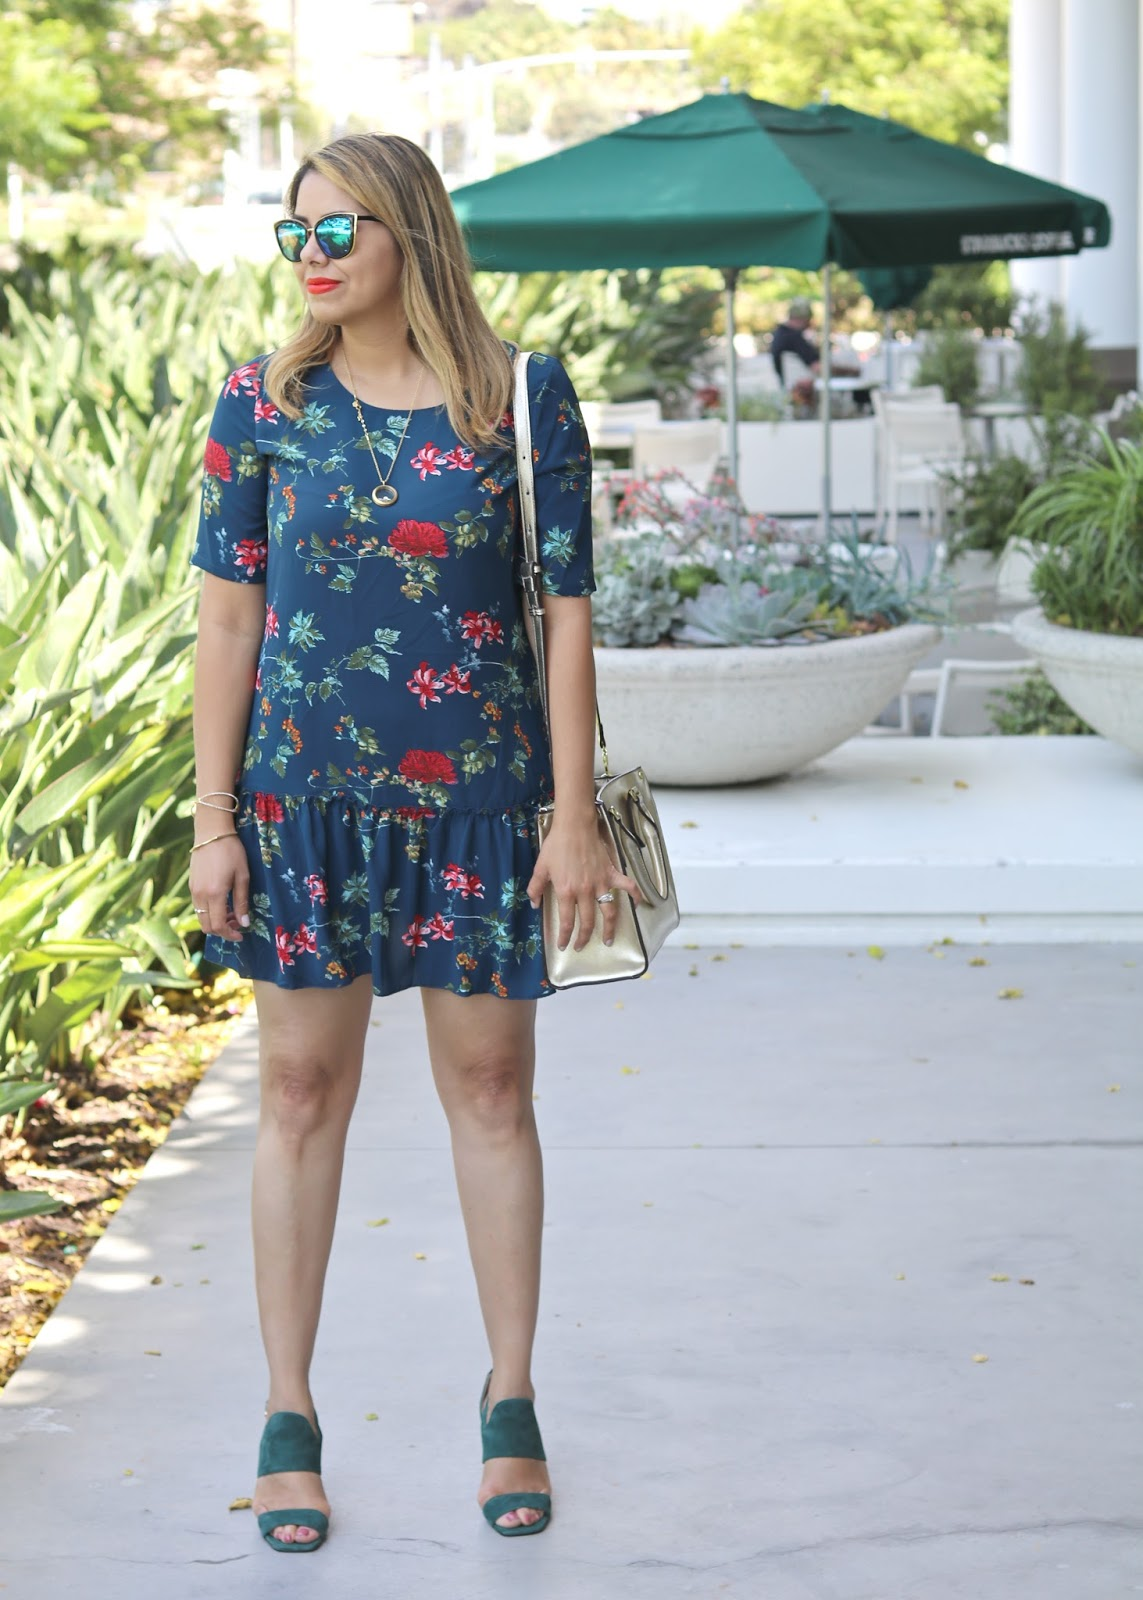 Summer to Fall outfit, socal fashion blogger, latina style blogger, what i wore to brunch